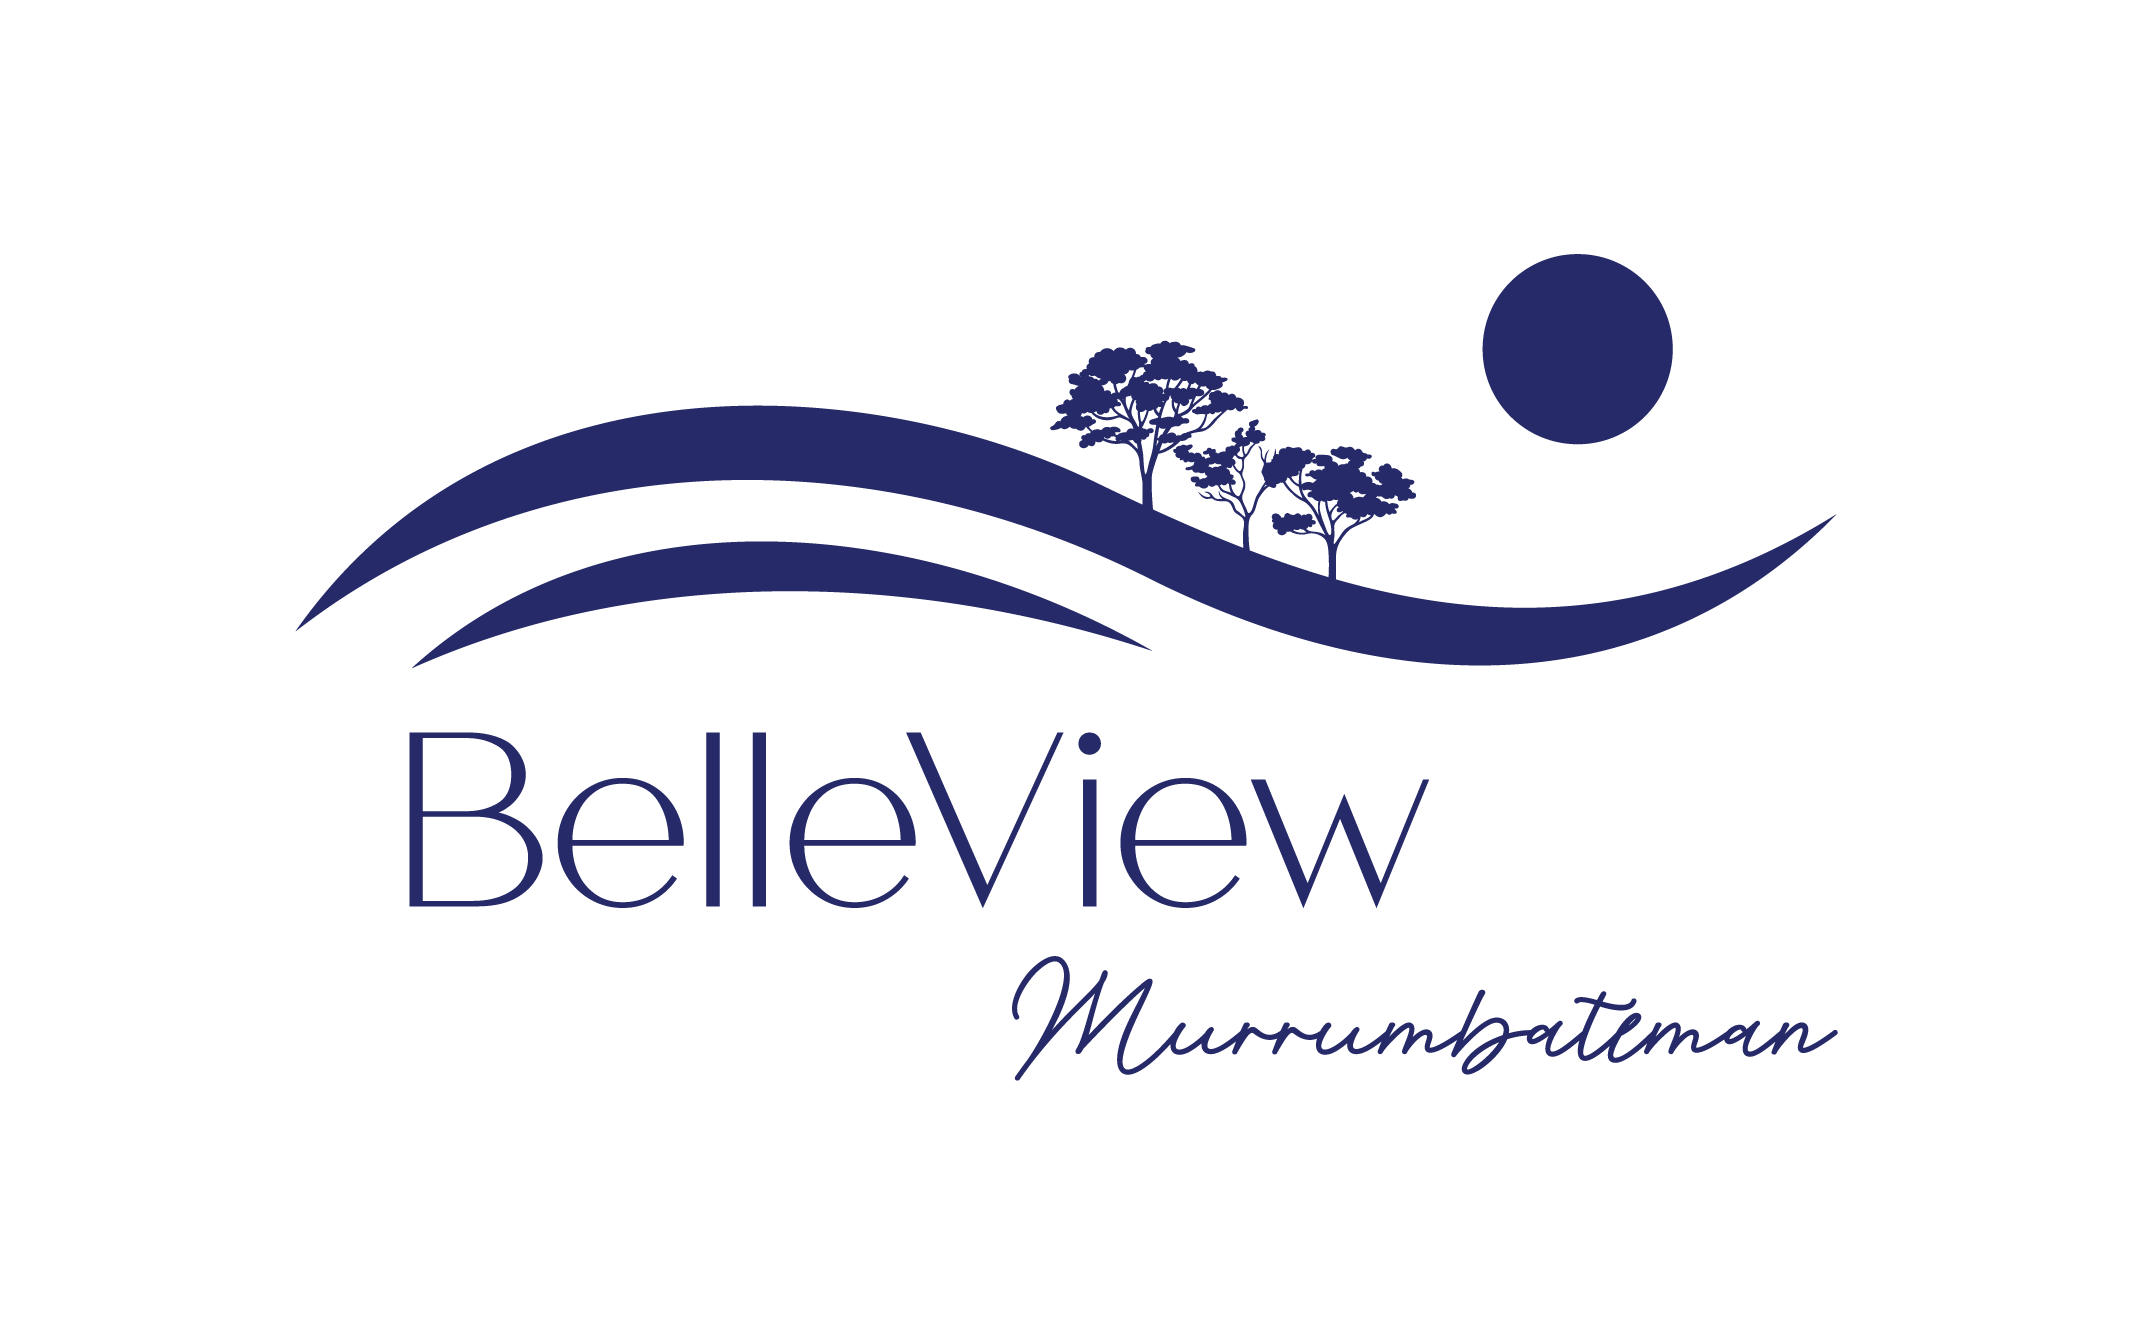 BelleView Land